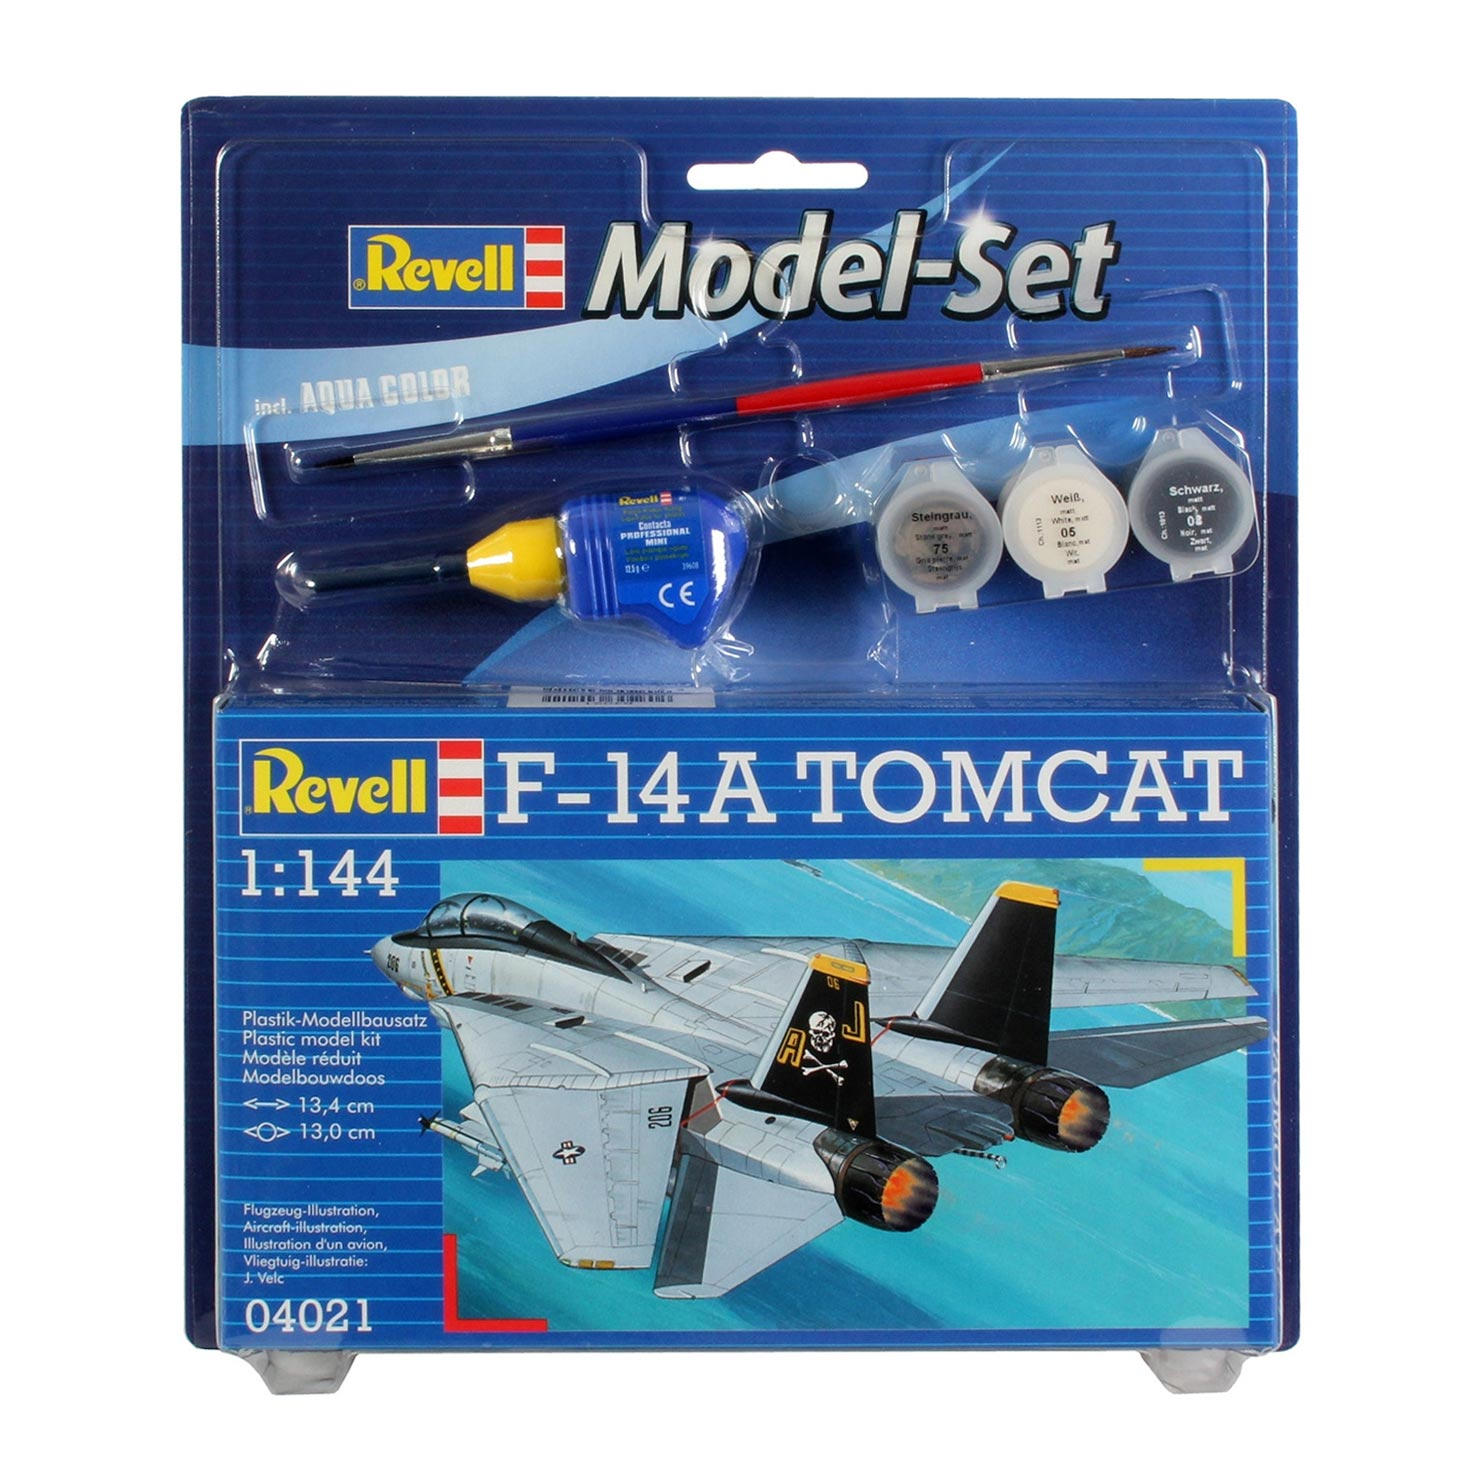 Revell Model Set - F-14A Tomcat